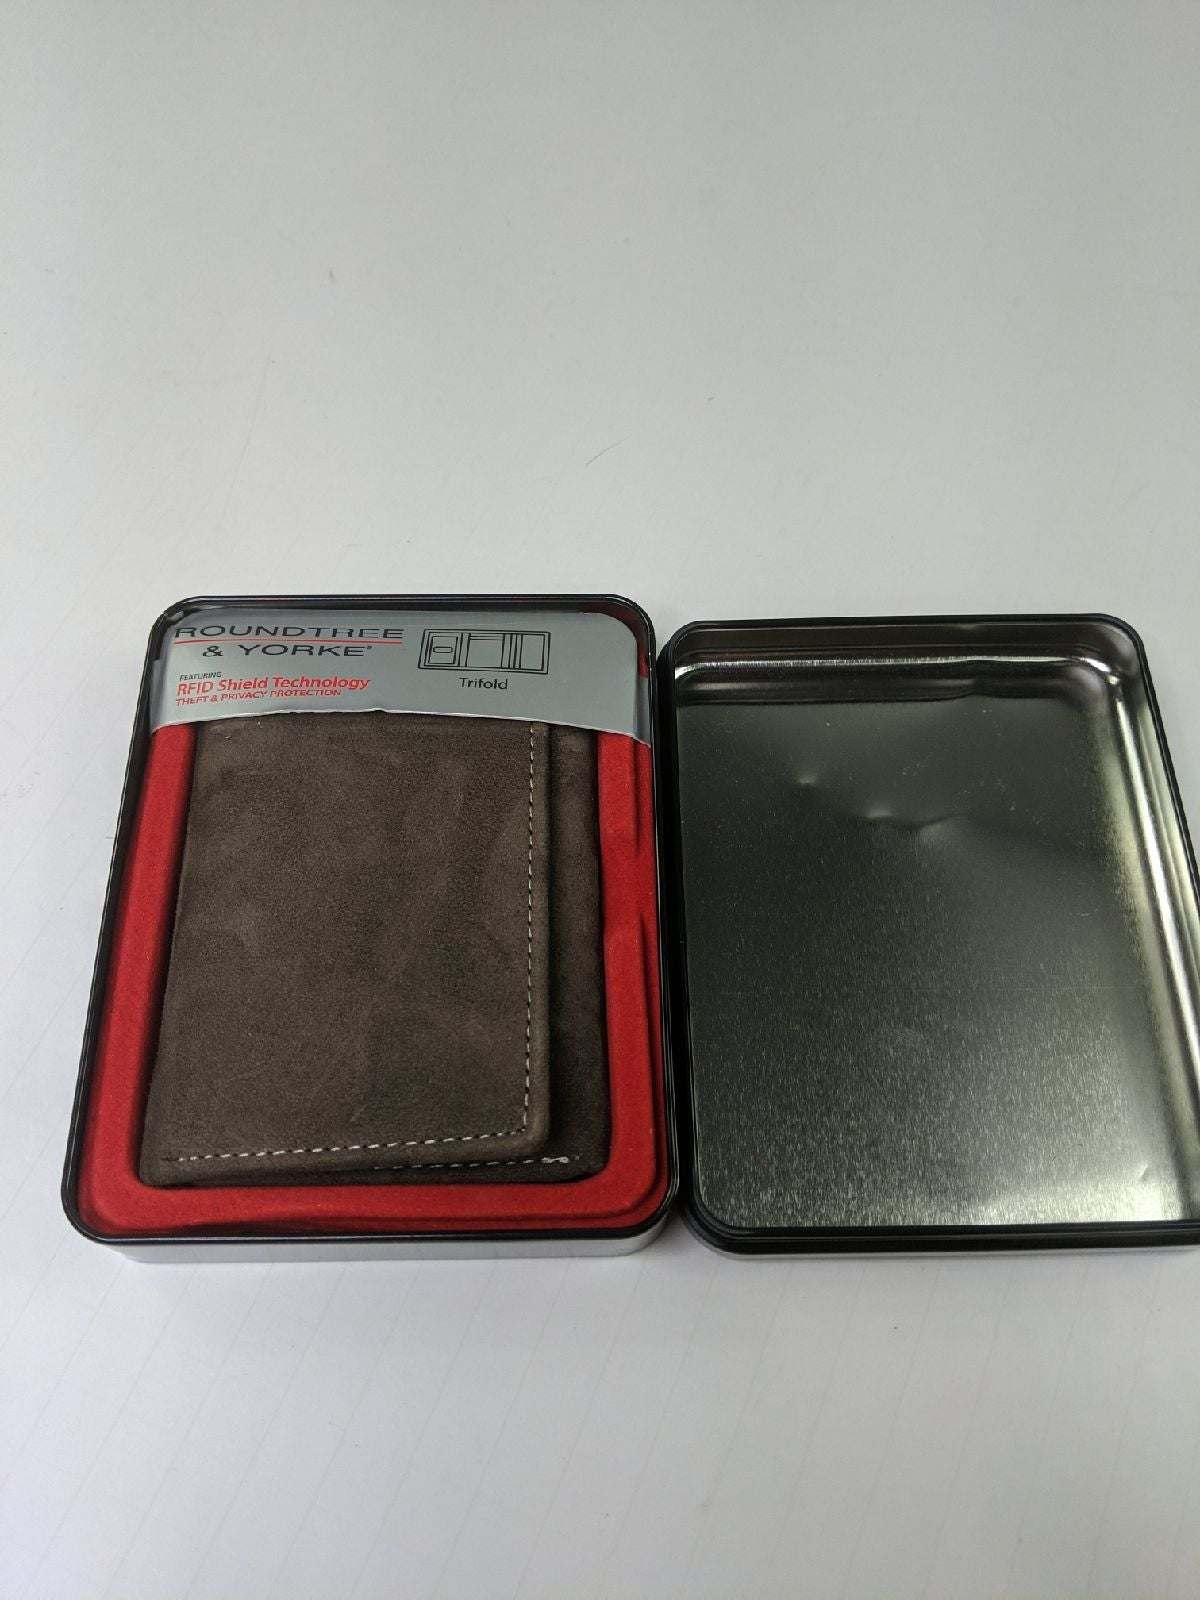 Roundtree and Yorke RFID wallet